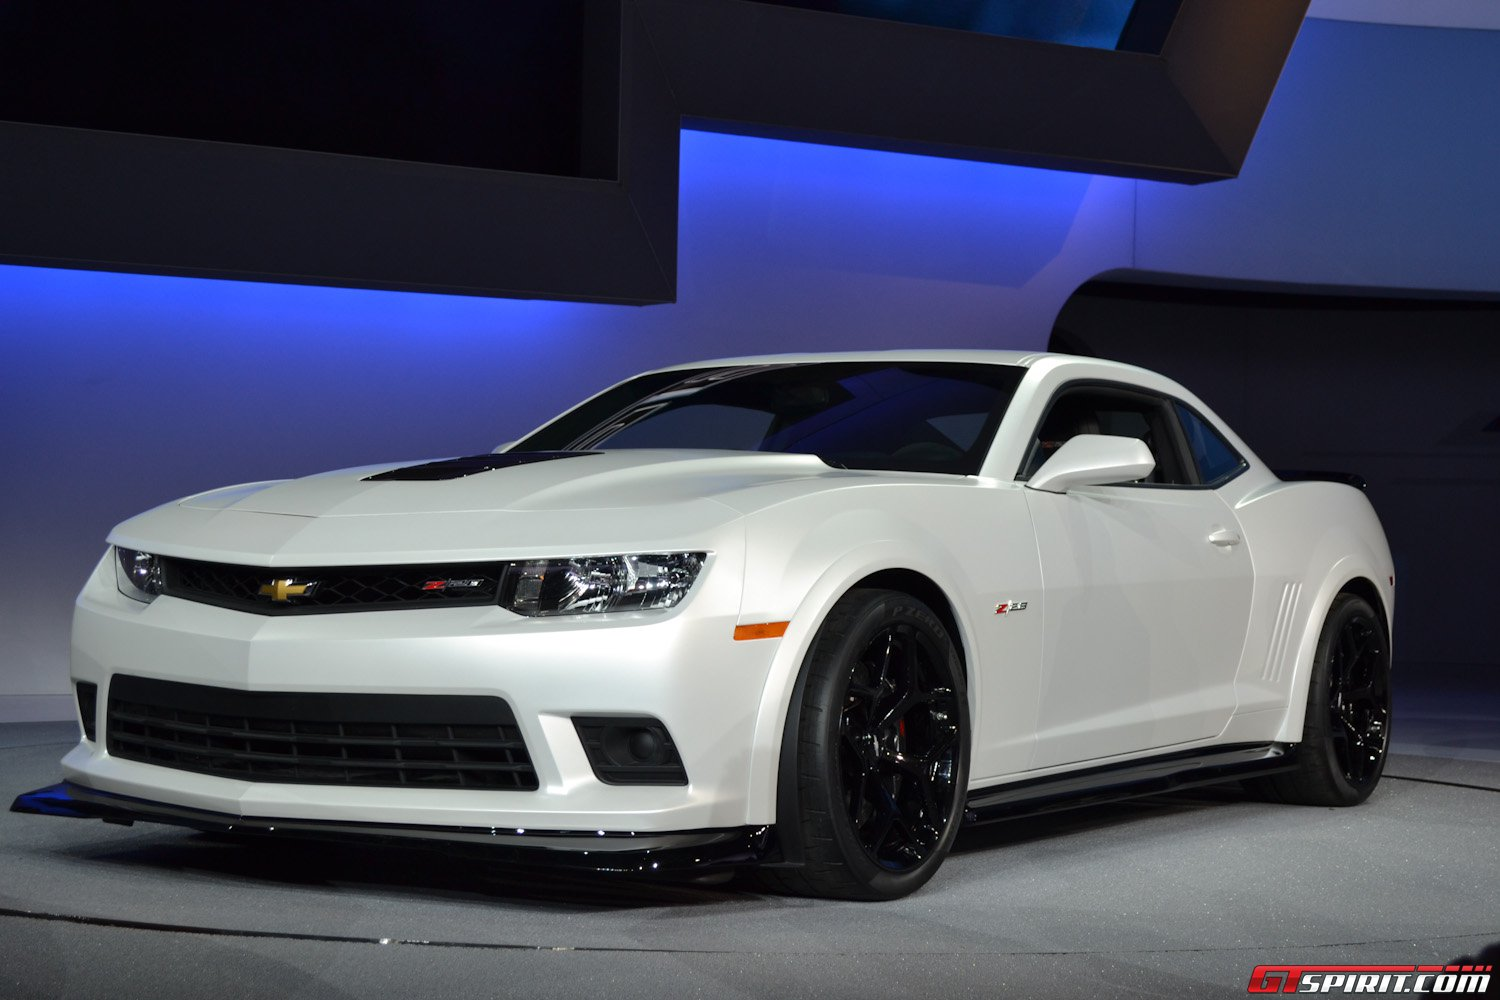 chevrolet cuts 2000 from 2015 camaro z 28 price gtspirit. Black Bedroom Furniture Sets. Home Design Ideas